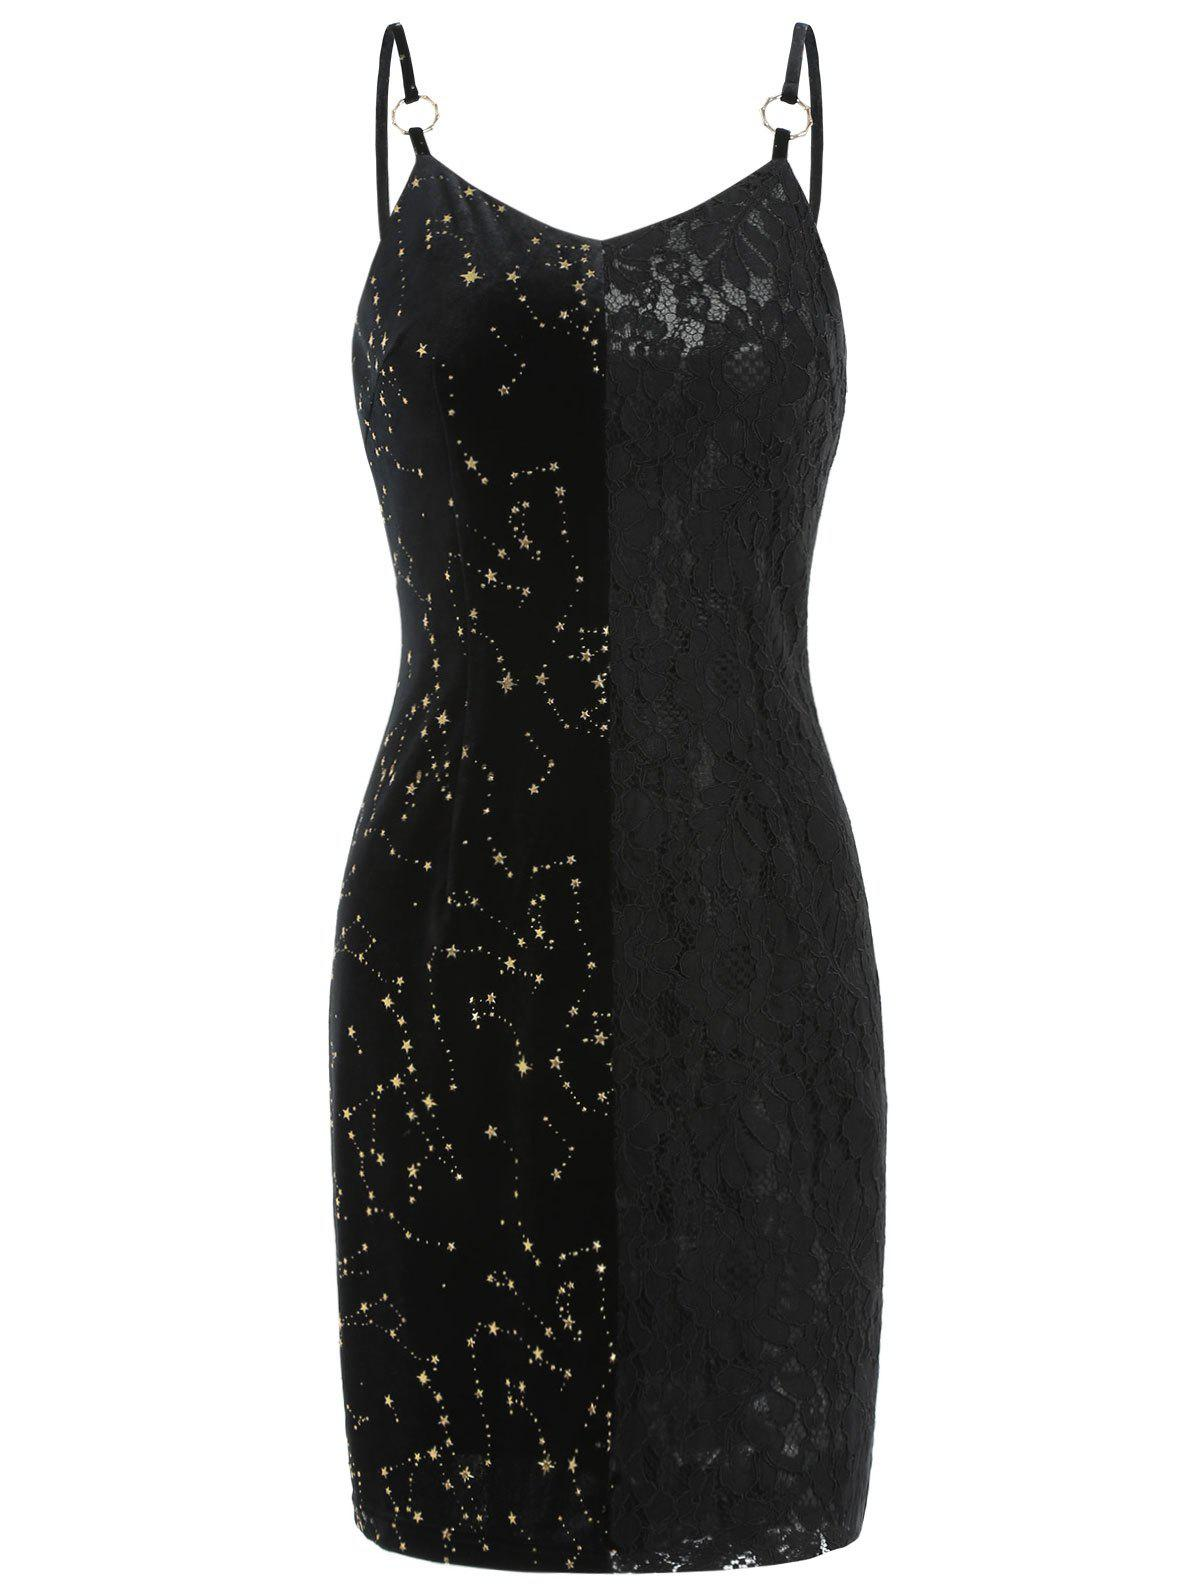 Velvet Lace Insert Star Mini Dress - BLACK L